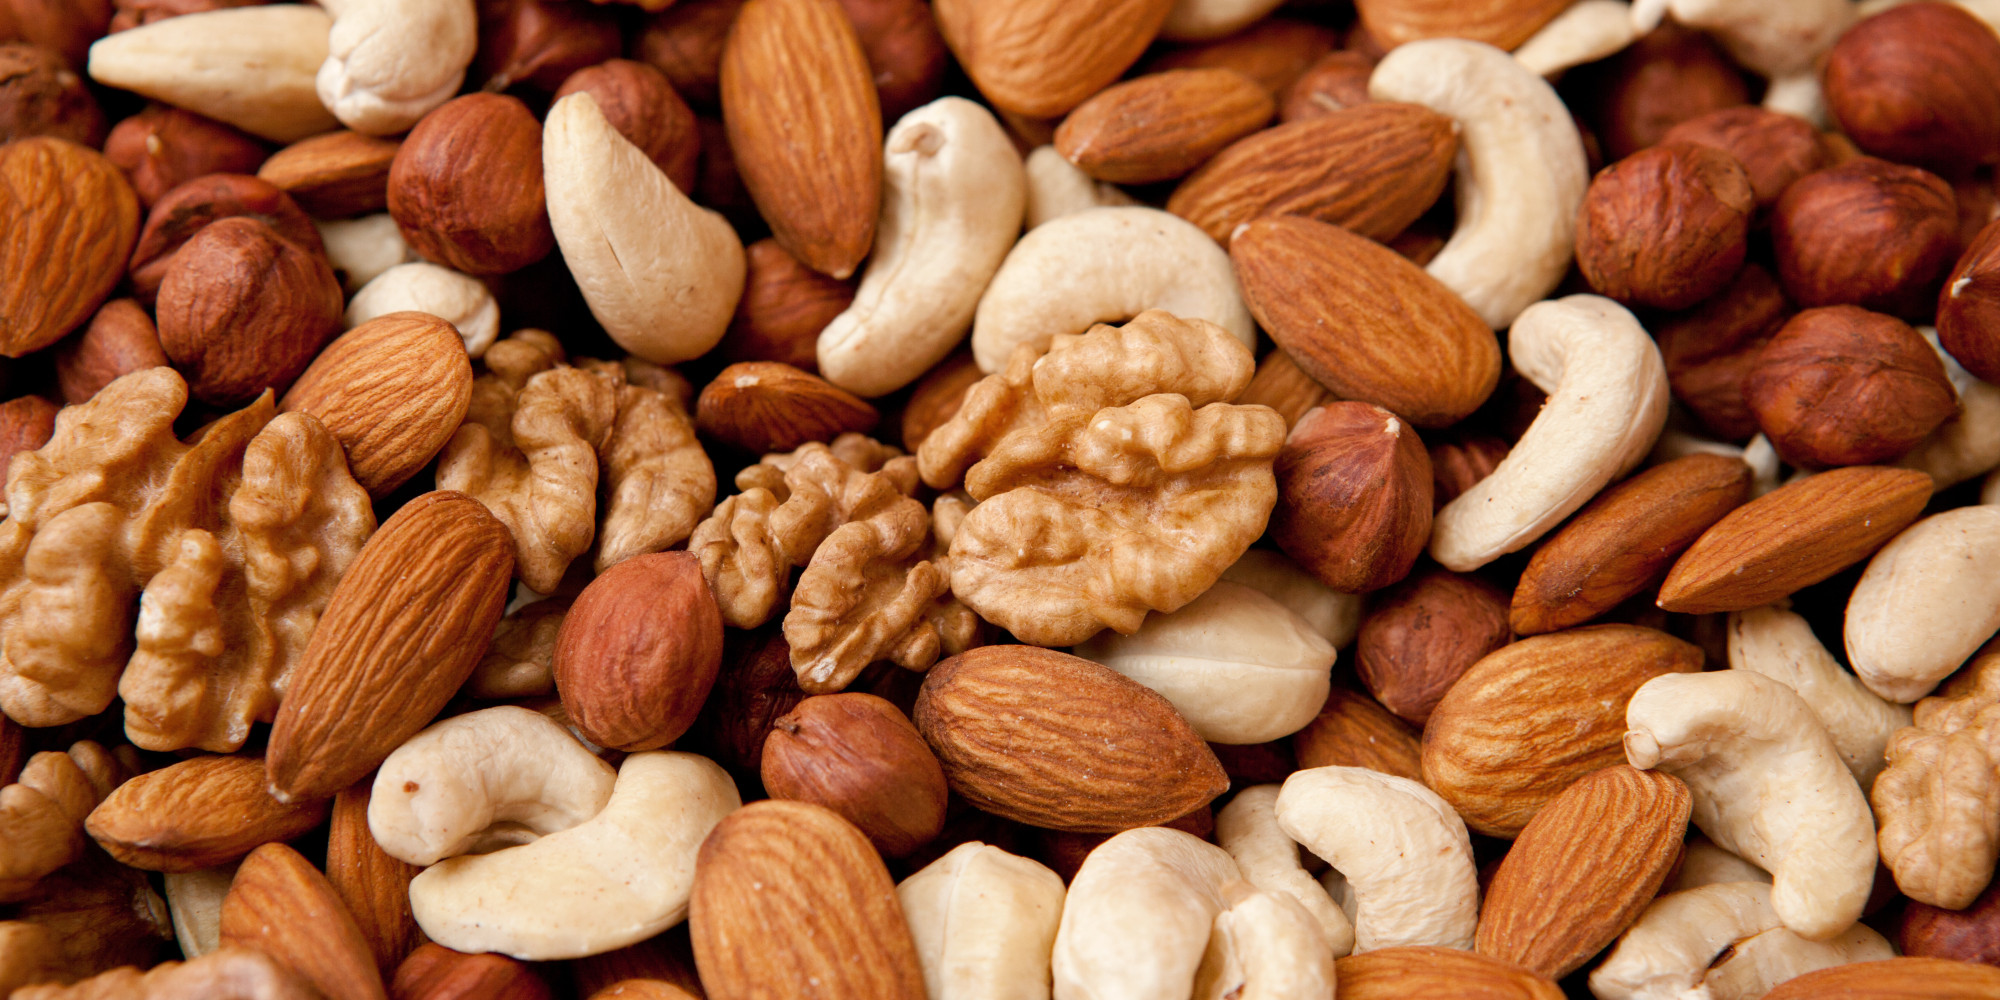 http://www.huffingtonpost.com/2013/11/21/nuts-cancer-heart-disease-death-risk_n_4316791.html